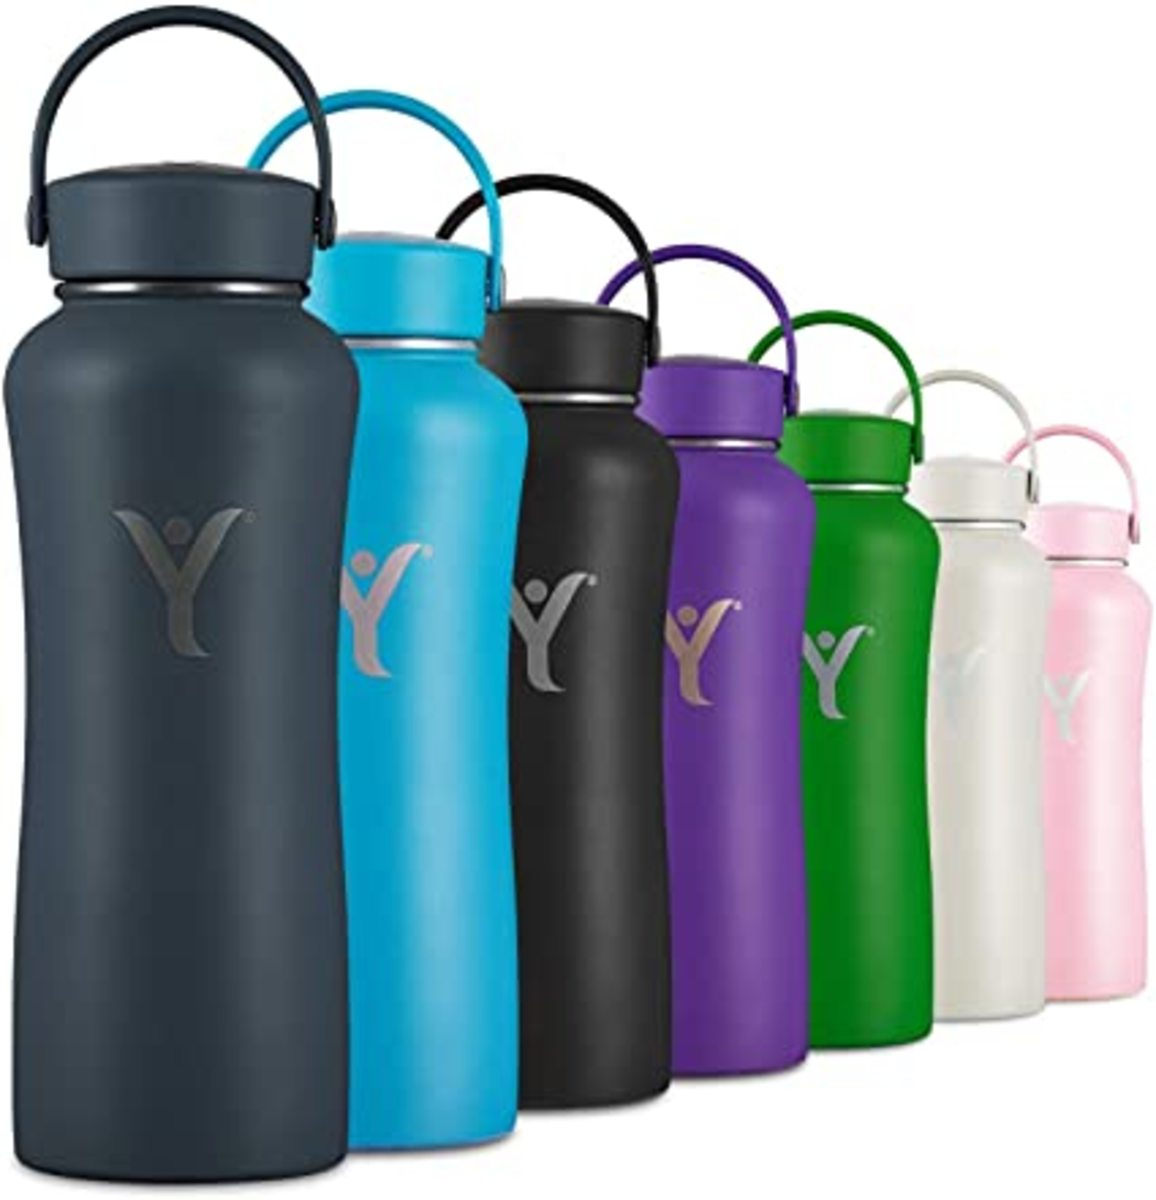 The DYLN Water Bottle